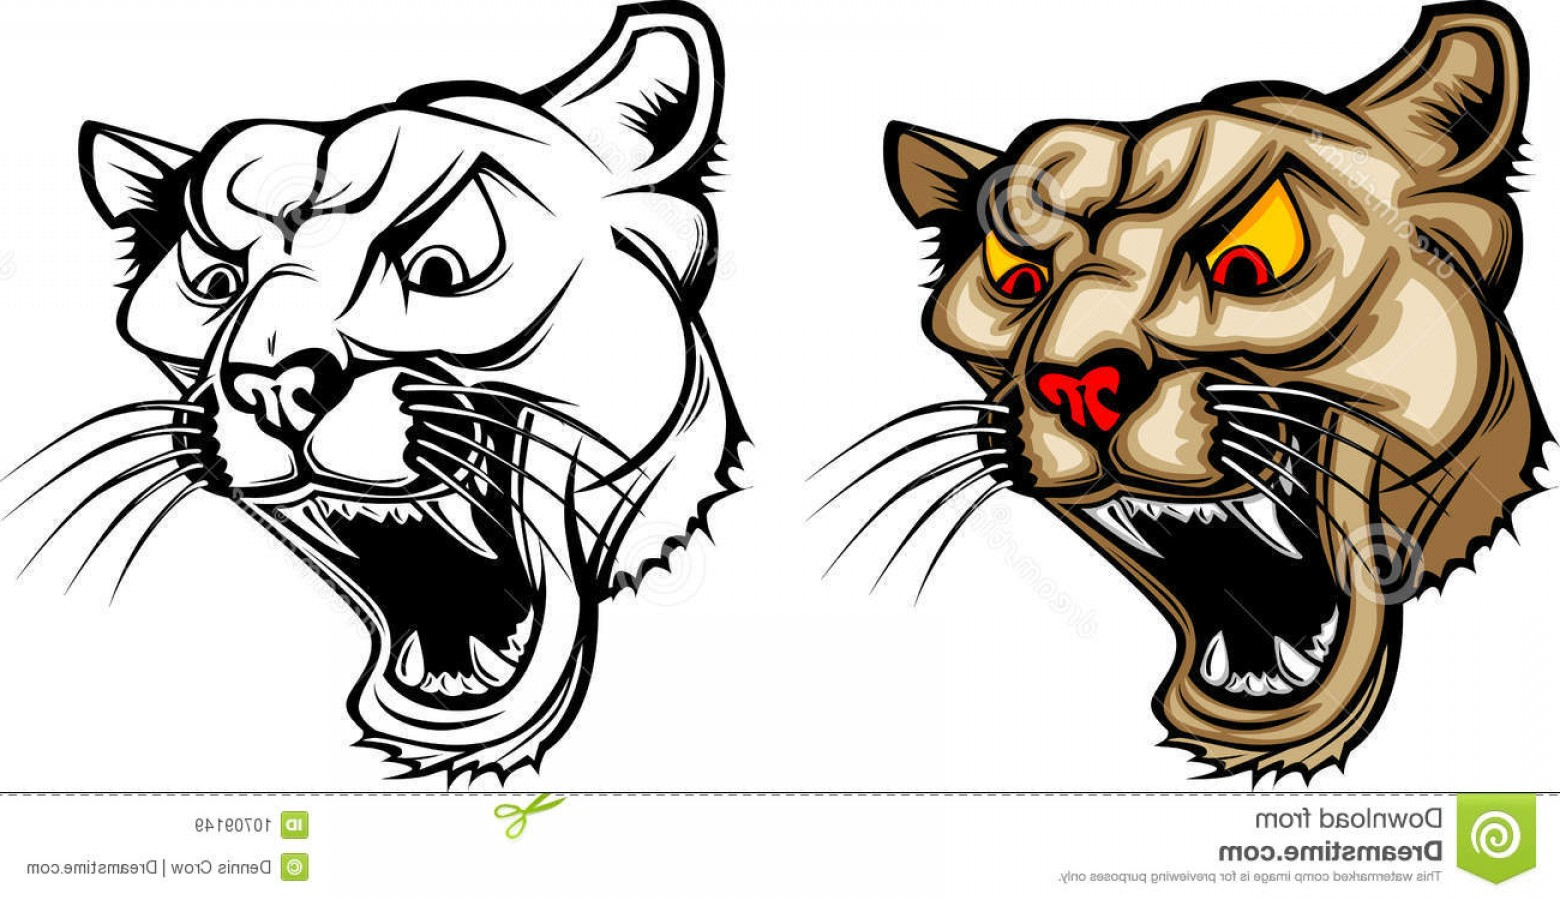 Cougar Logo Vector: Royalty Free Stock Images Cougar Panther Mascot Logo Image